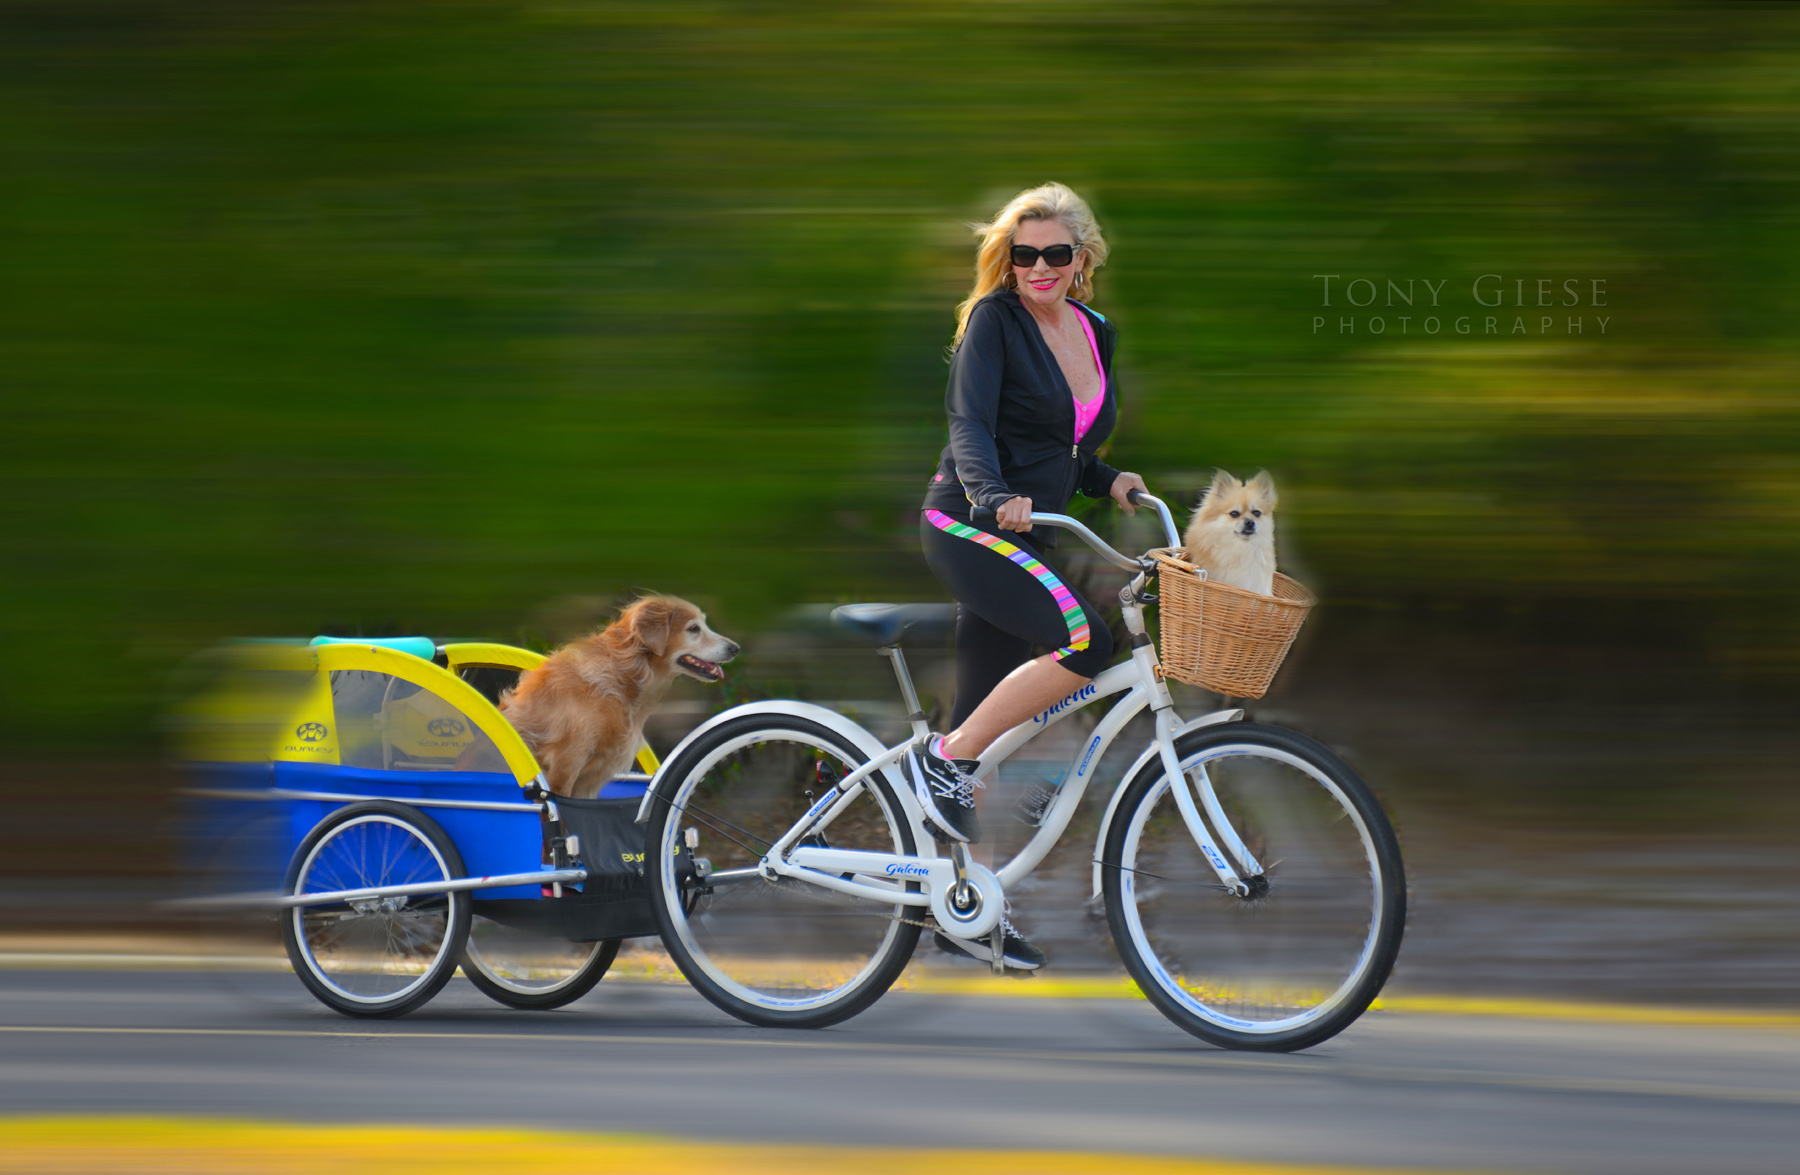 Bicycling with two dogs